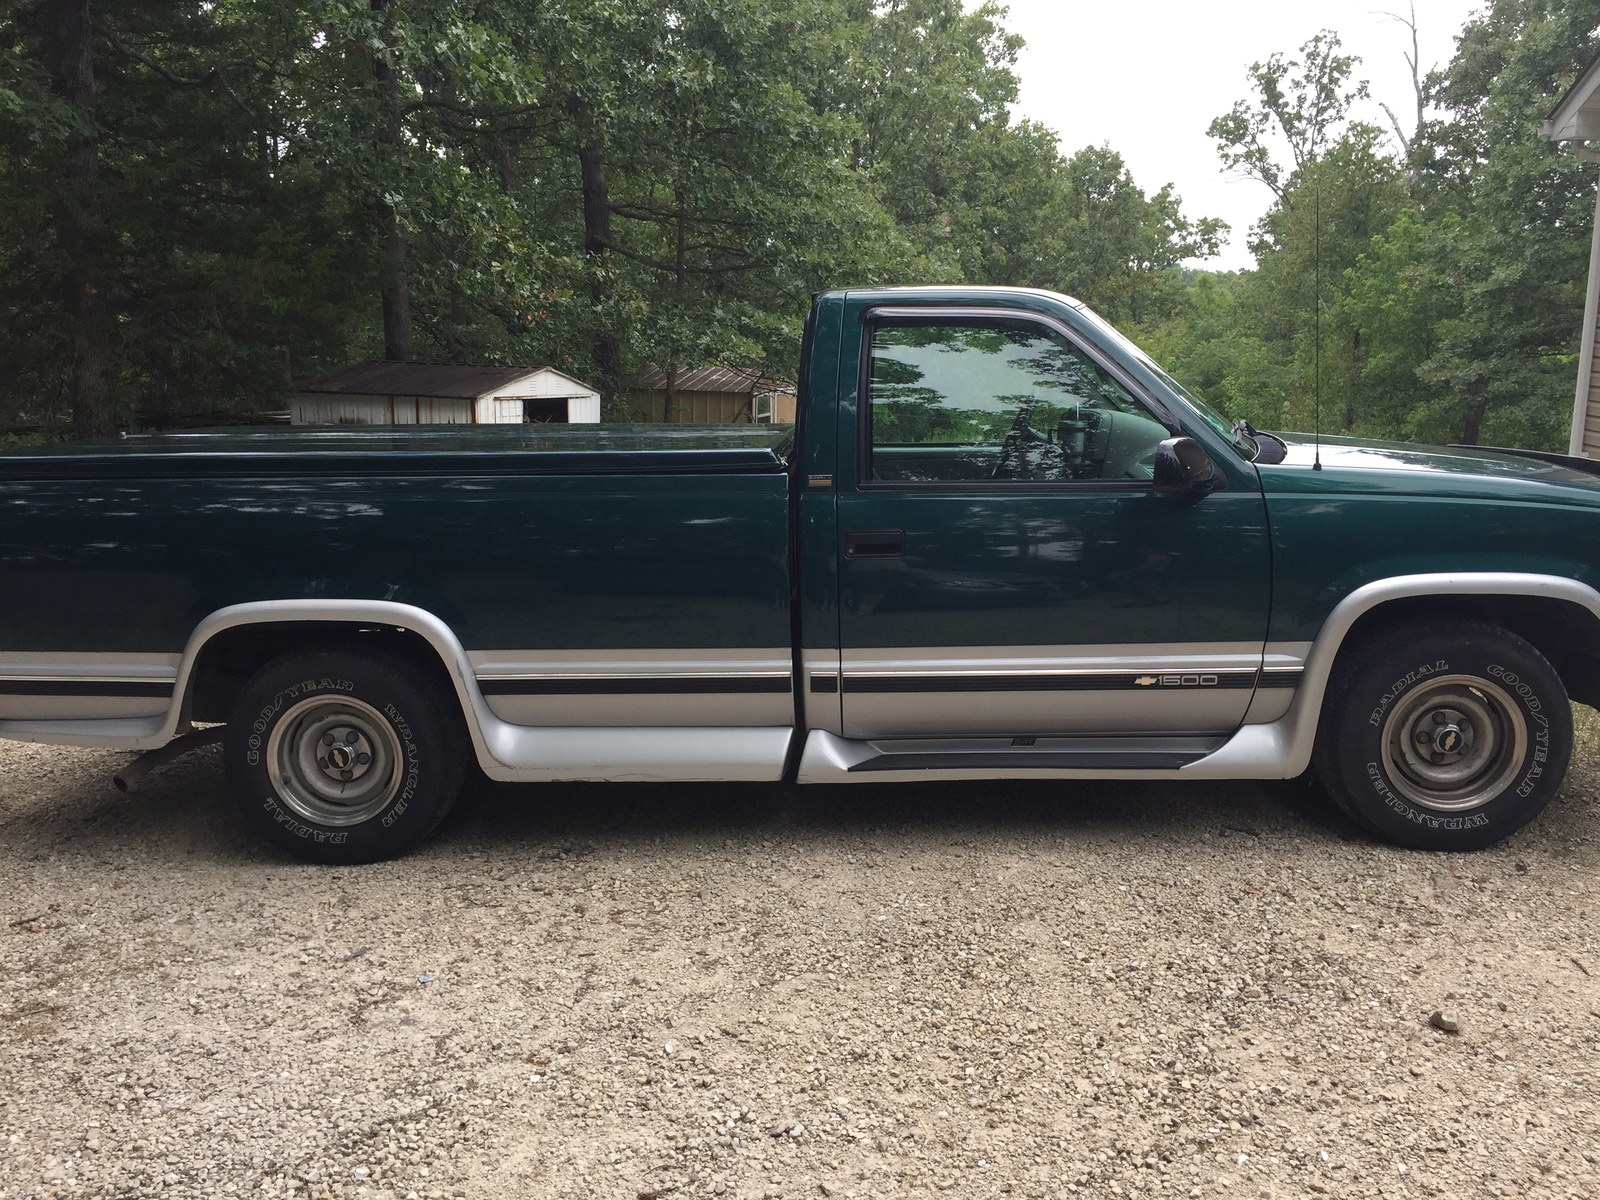 Chevrolet C/K 1500 Questions - Have you ever heard of a 96